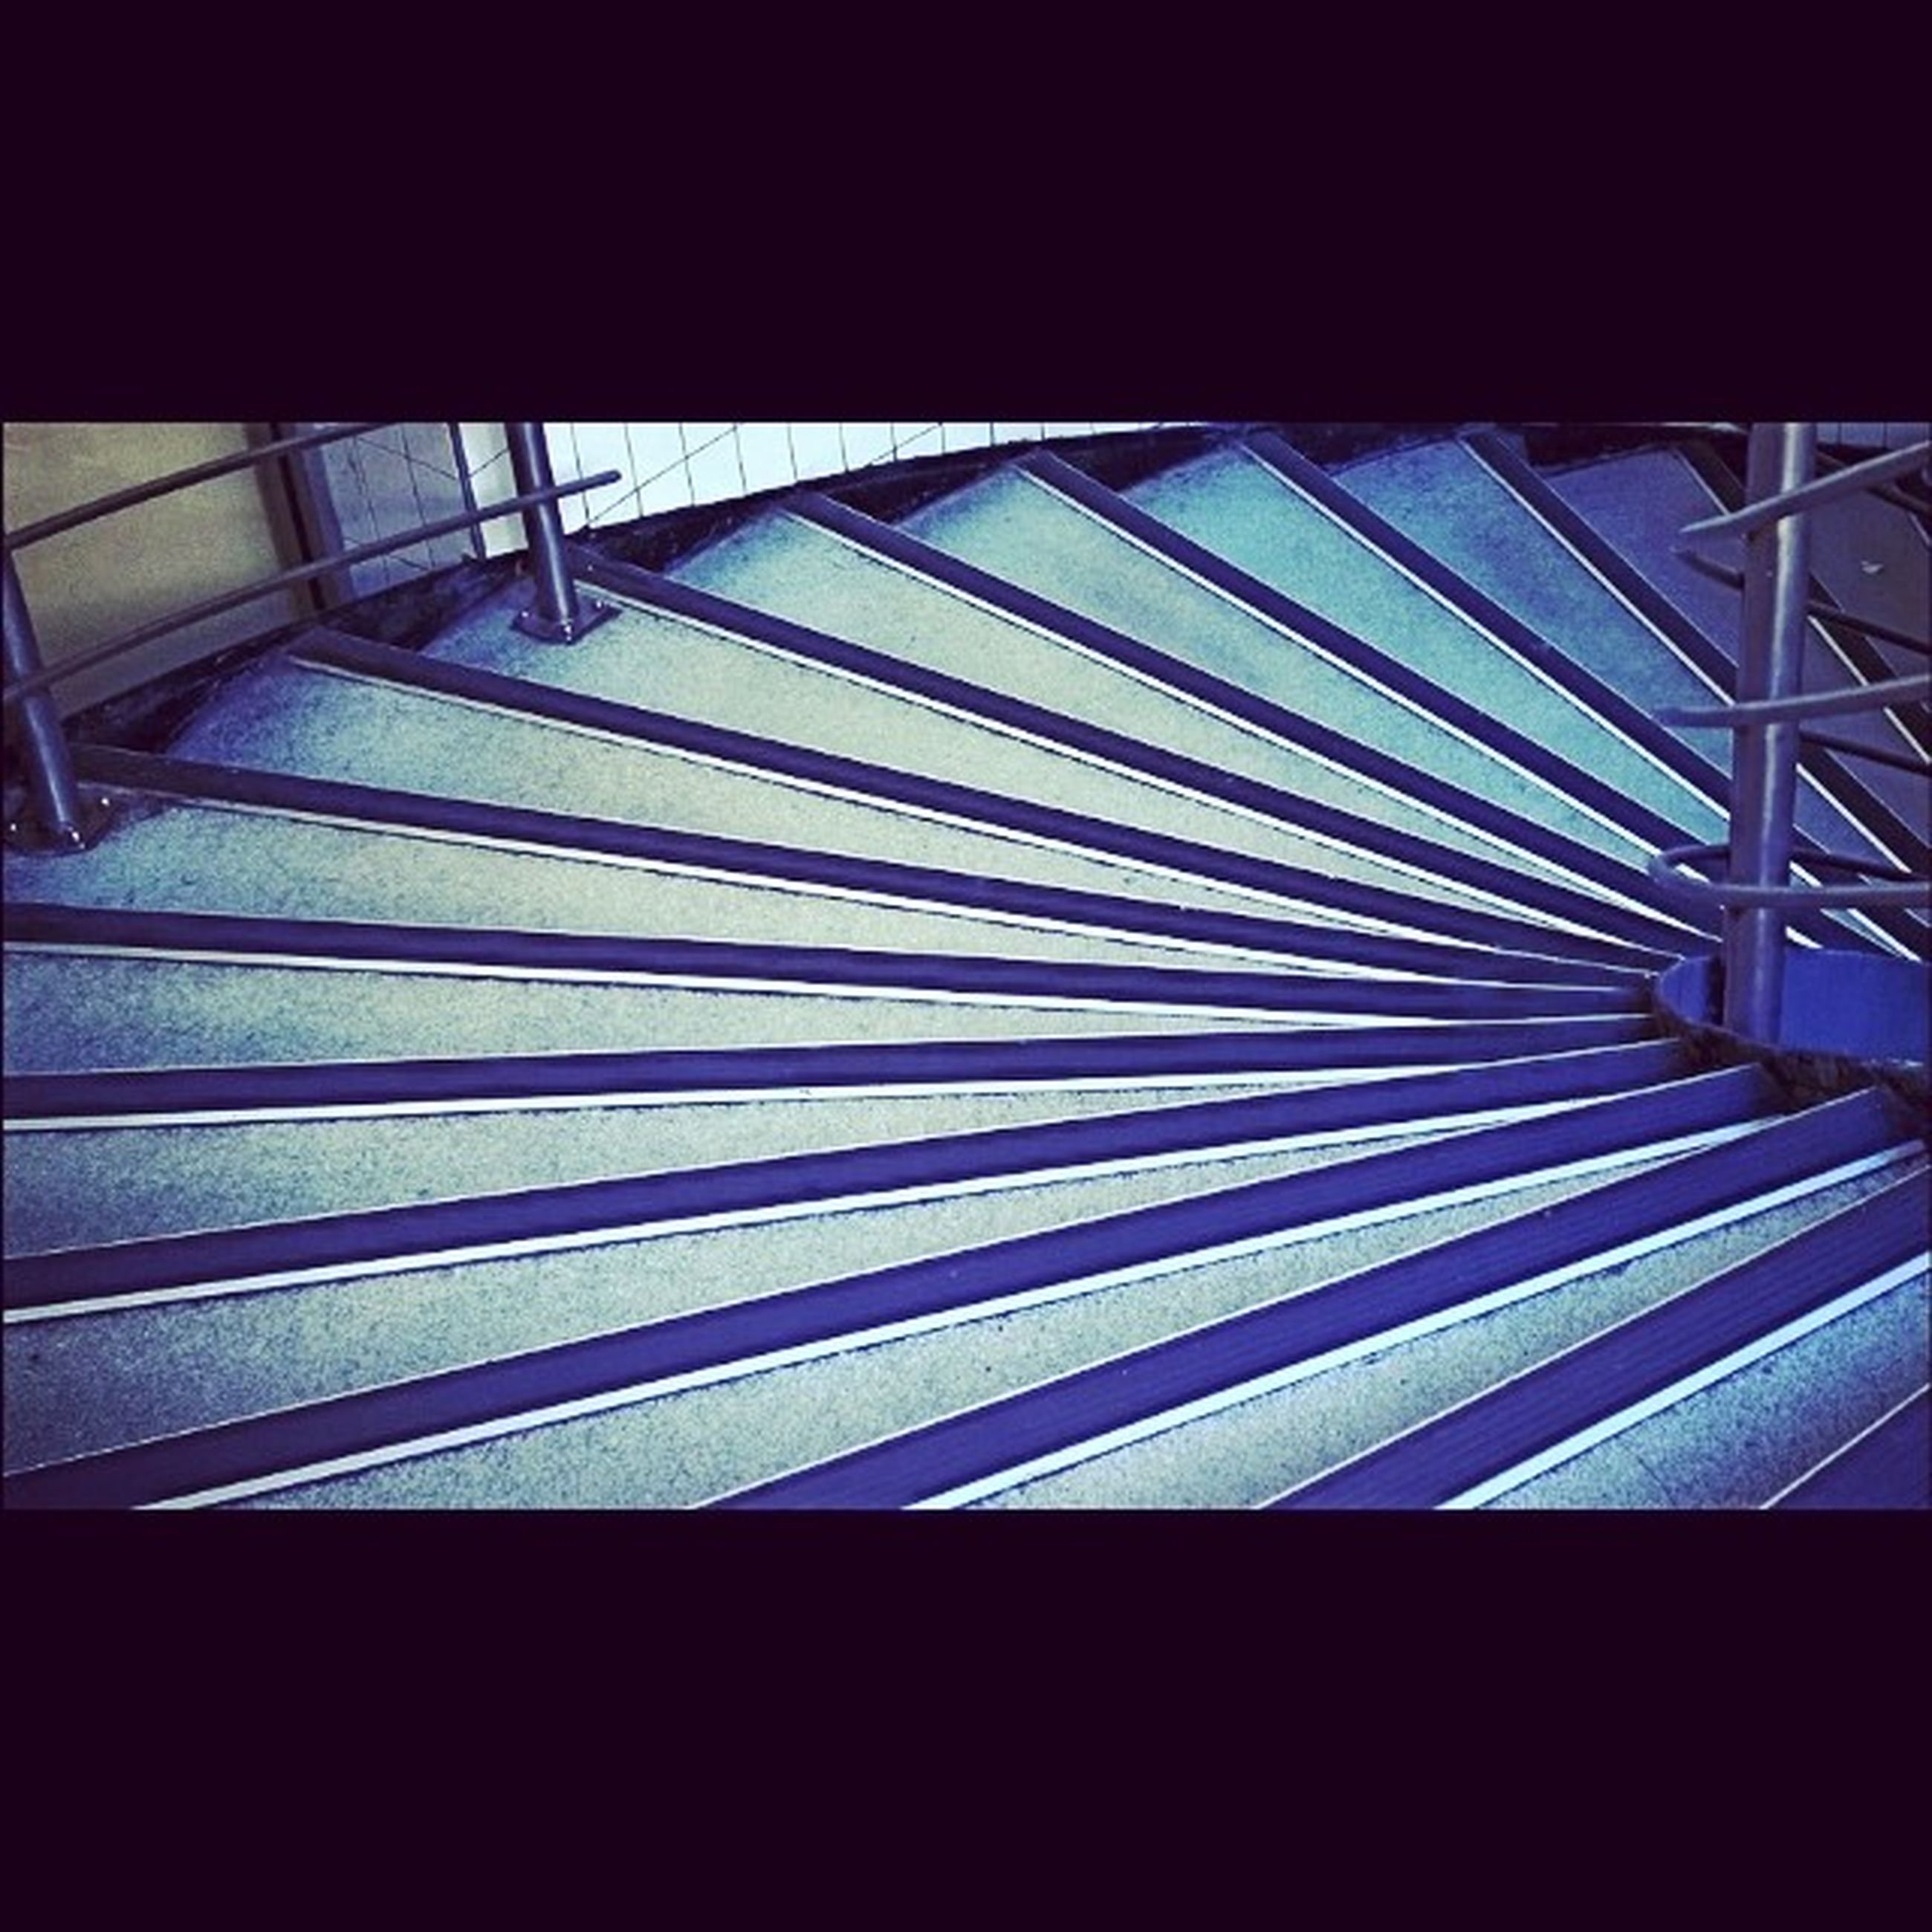 architecture, built structure, low angle view, indoors, railing, building exterior, pattern, building, modern, staircase, steps, steps and staircases, glass - material, window, no people, sunlight, day, city, metal, shadow